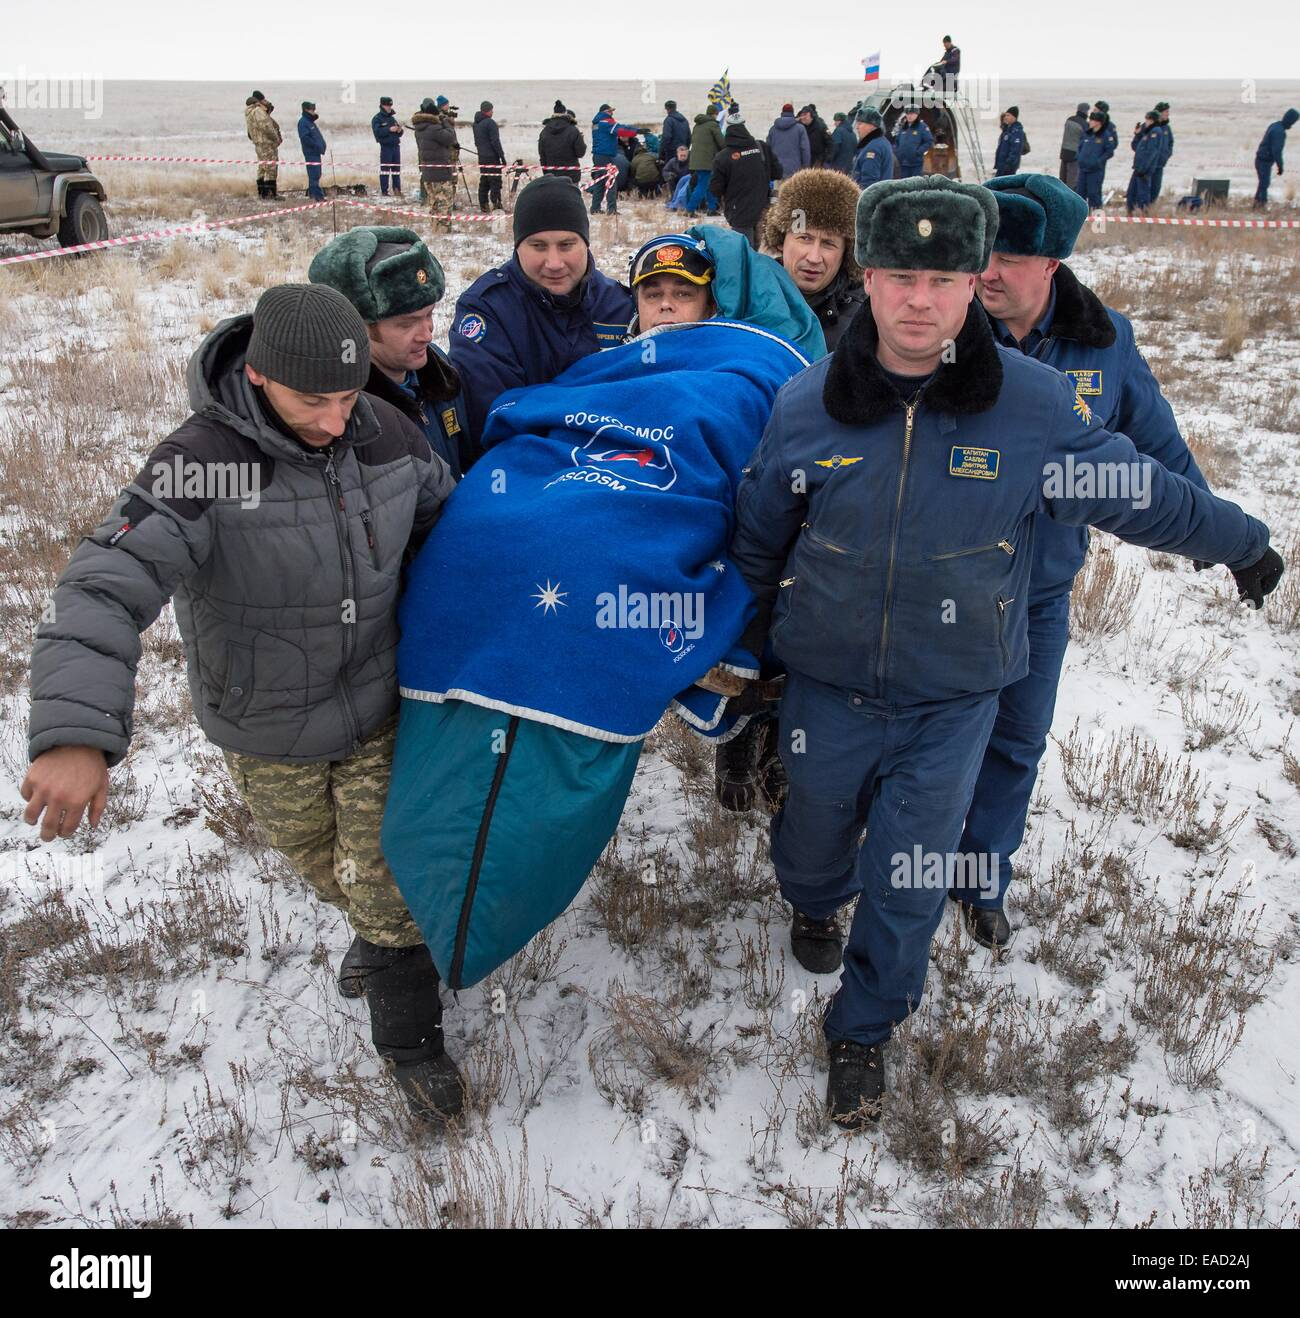 ISS Expedition 41 Commander Max Suraev of the Russian Federal Space Agency is carried to the medical tent outside - Stock Image